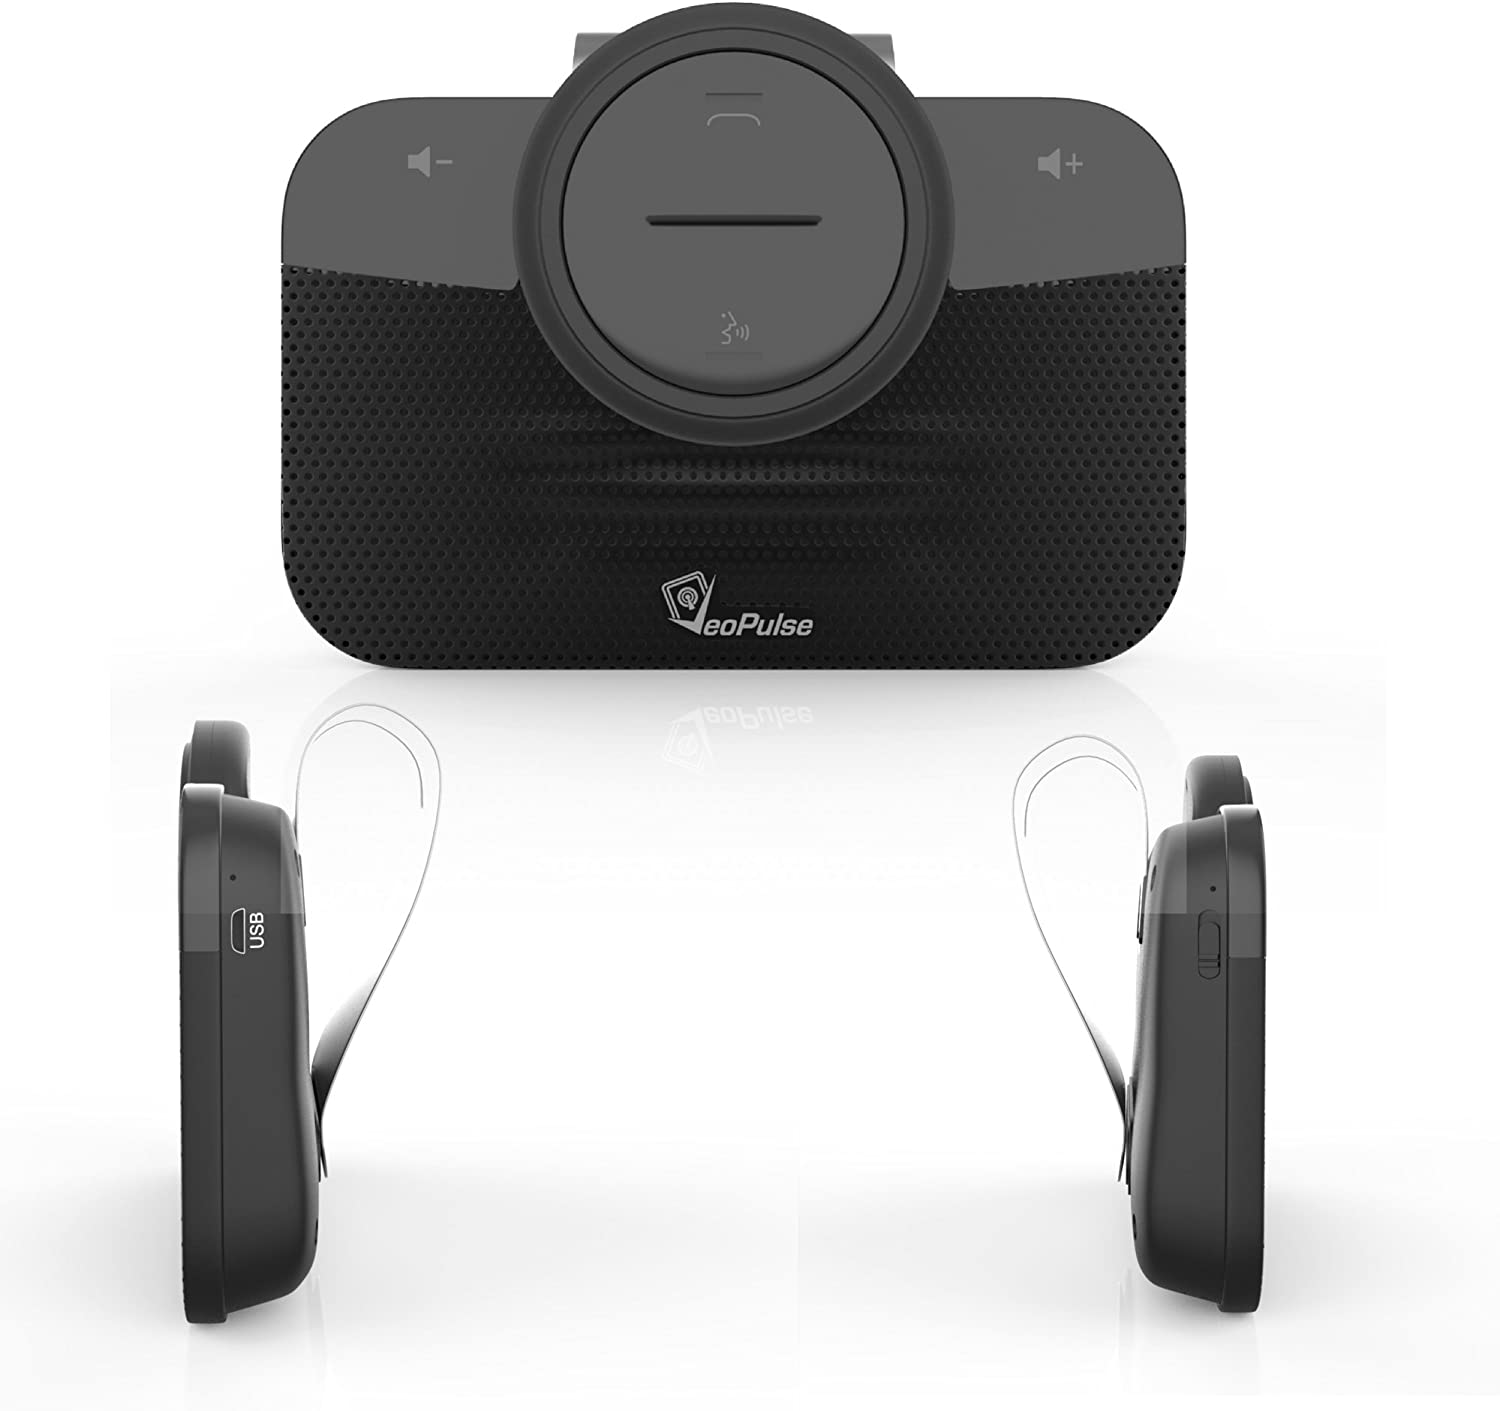 VeoPulse Car Speakerphone B-PRO 2B Hands-Free kit with Bluetooth Automatic Cellphone Connection